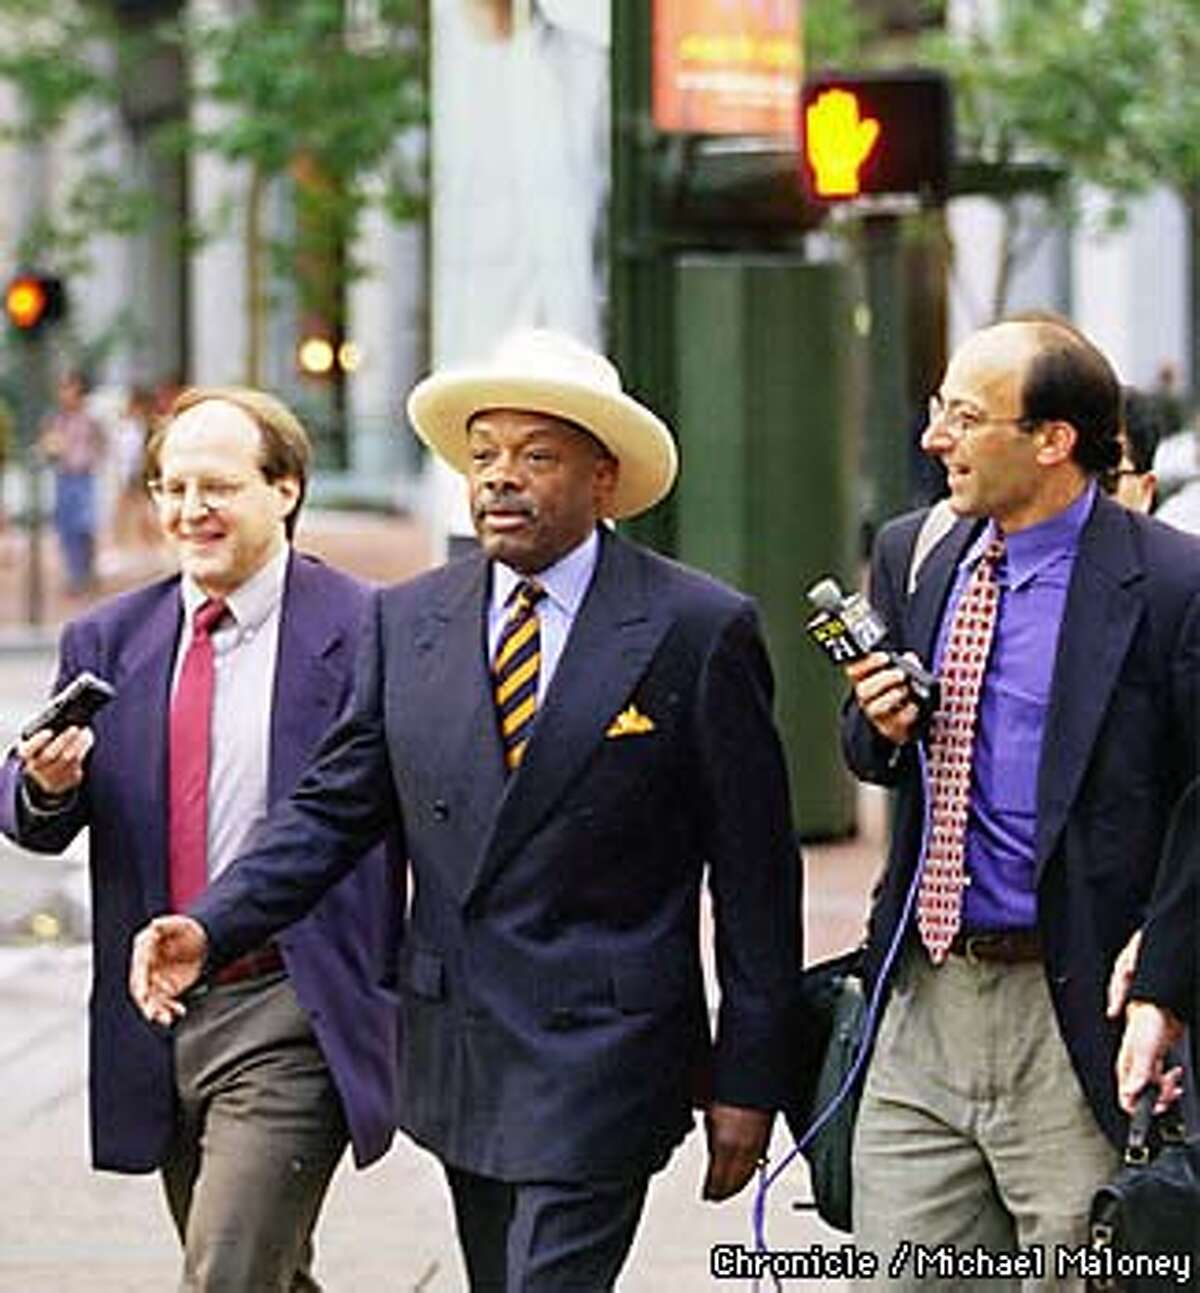 Mayor Willie Brown flanked by Edward Epstein and KCBS reporter Mike Sugarman walks against a red light. The Chronicle and KCBS challenged the mayor who walked and Muni to a race between Hyde Street and Montgomery Street. Muni won by 10 minutes. BY MICHAEL MALONEY/THE CHRONICLE